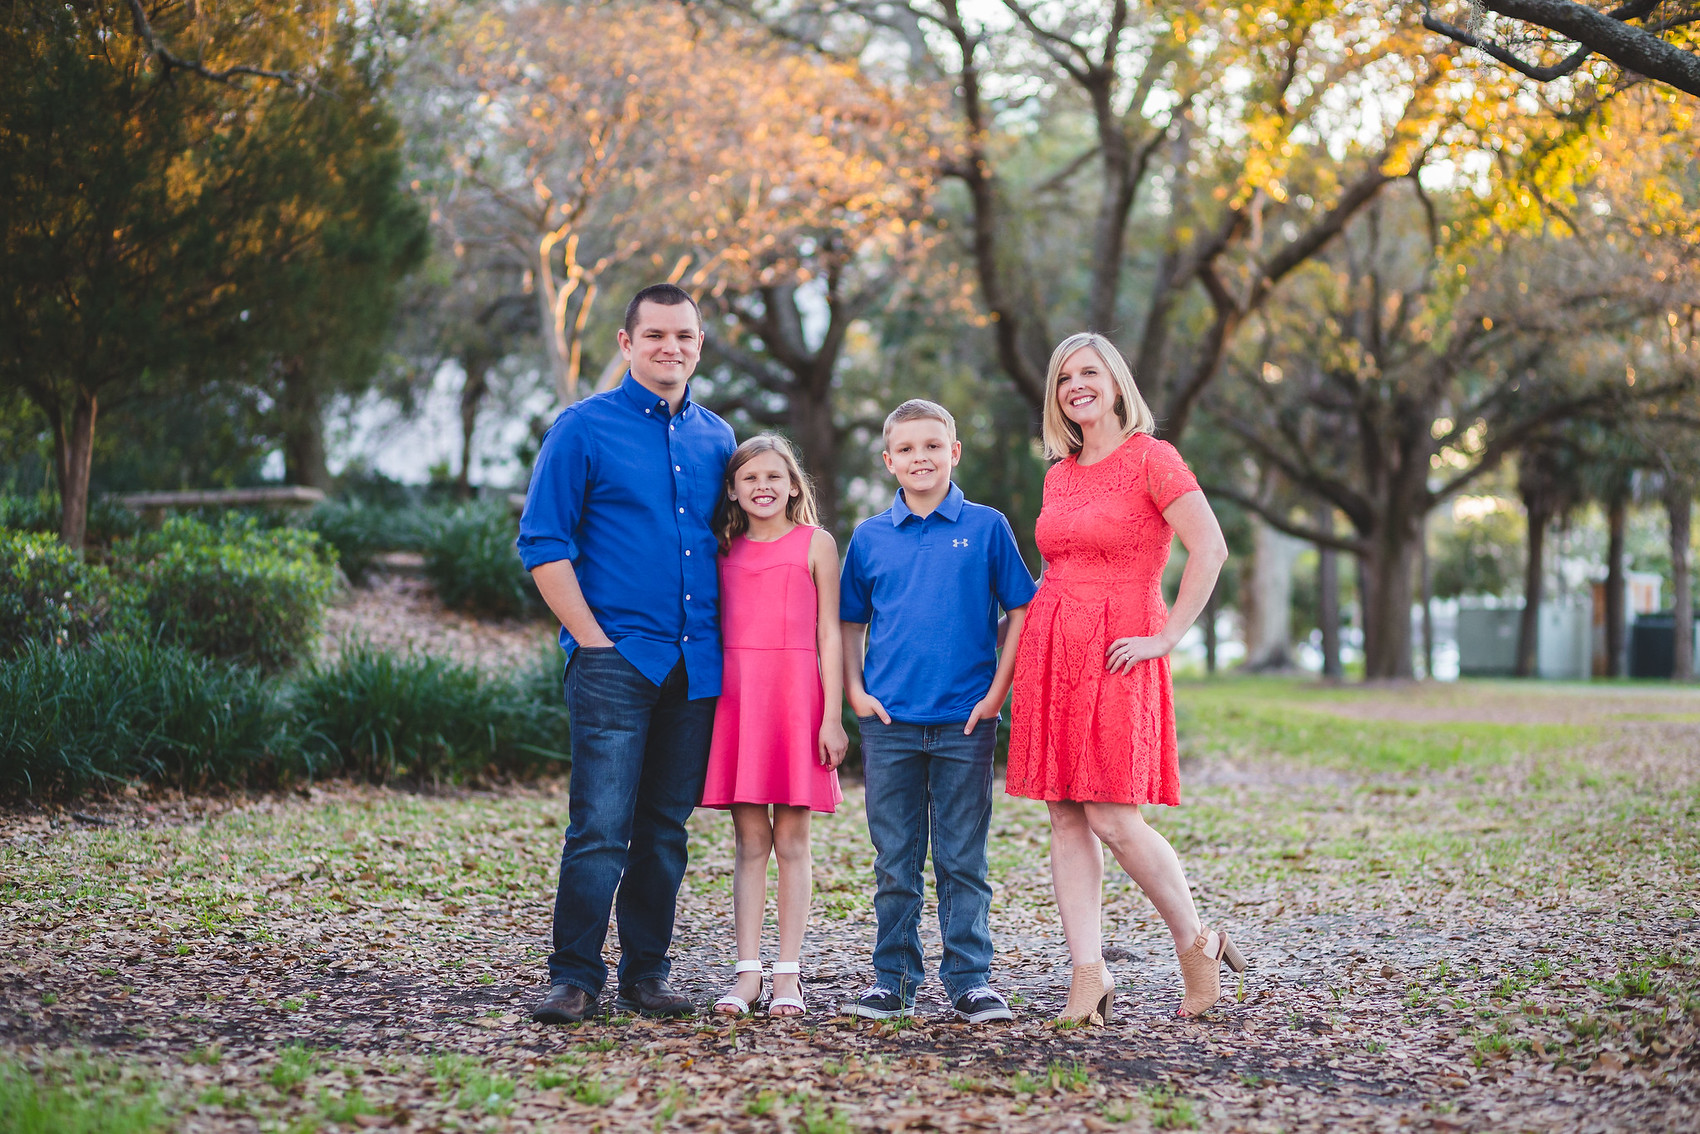 adam-szarmack-treaty-oak-park-jacksonville-family-photographer-8.jpg